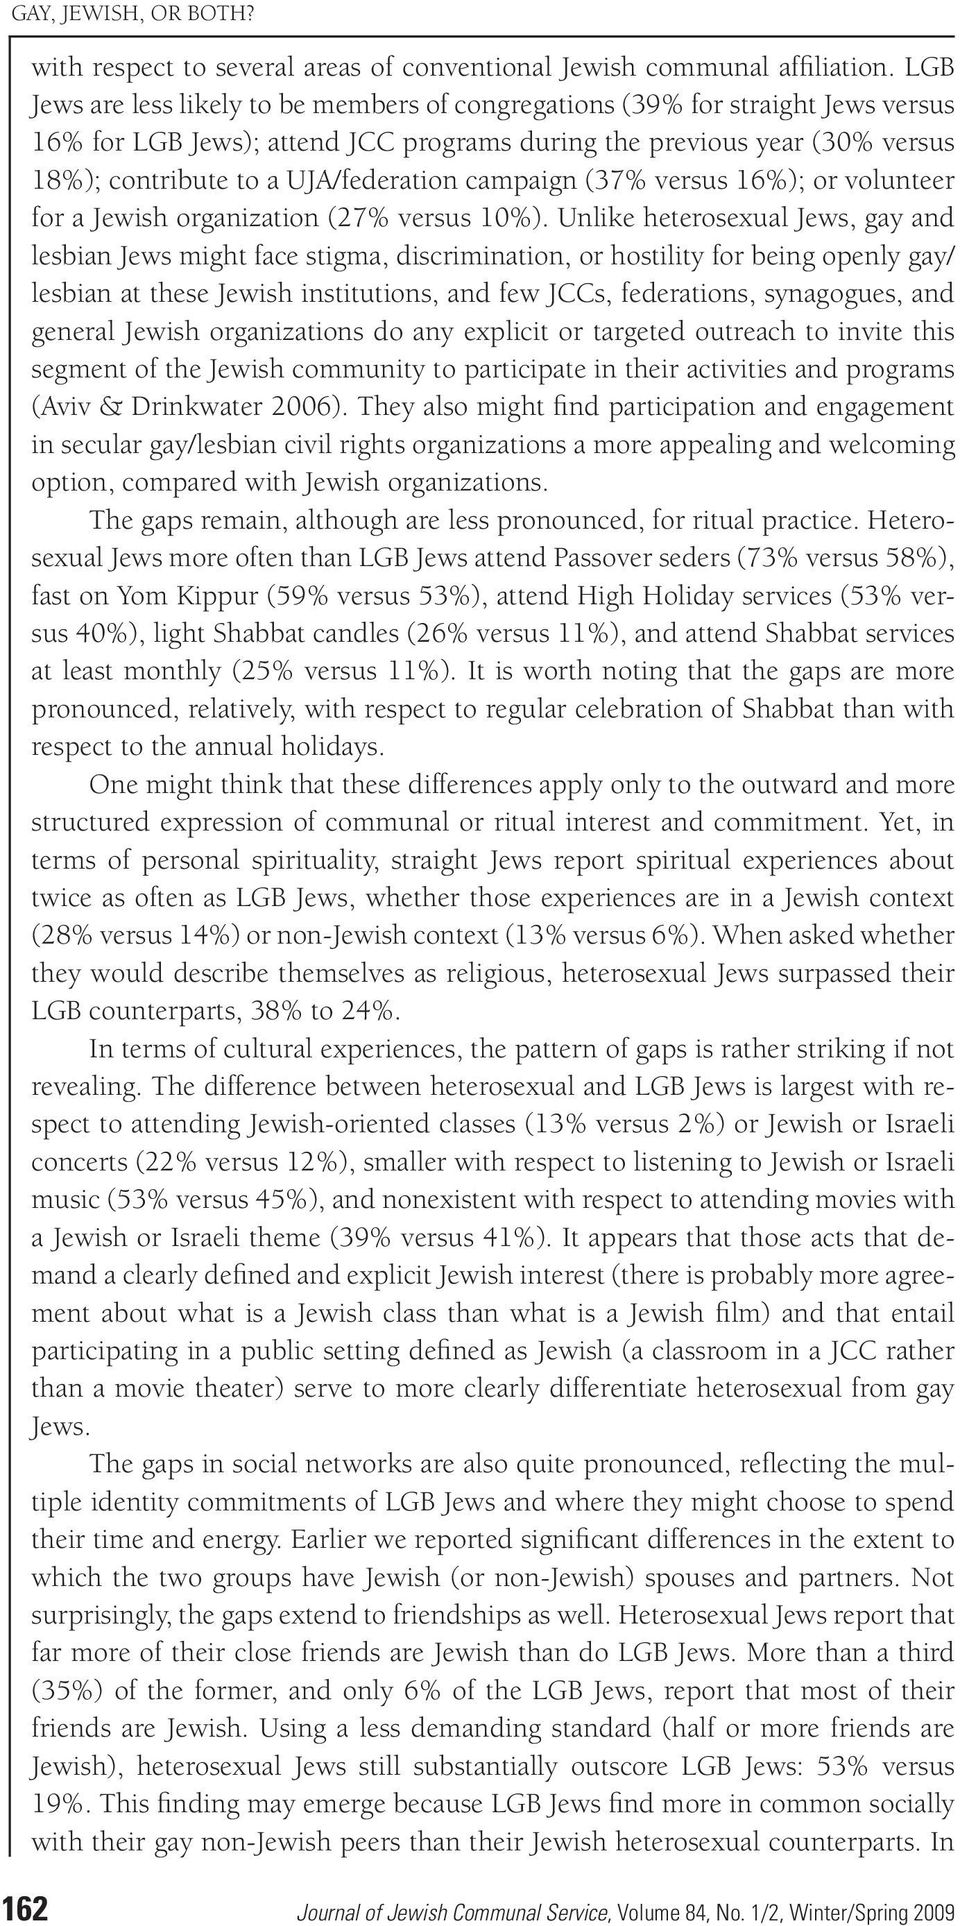 campaign (37% versus 16%); or volunteer for a Jewish organization (27% versus 10%).